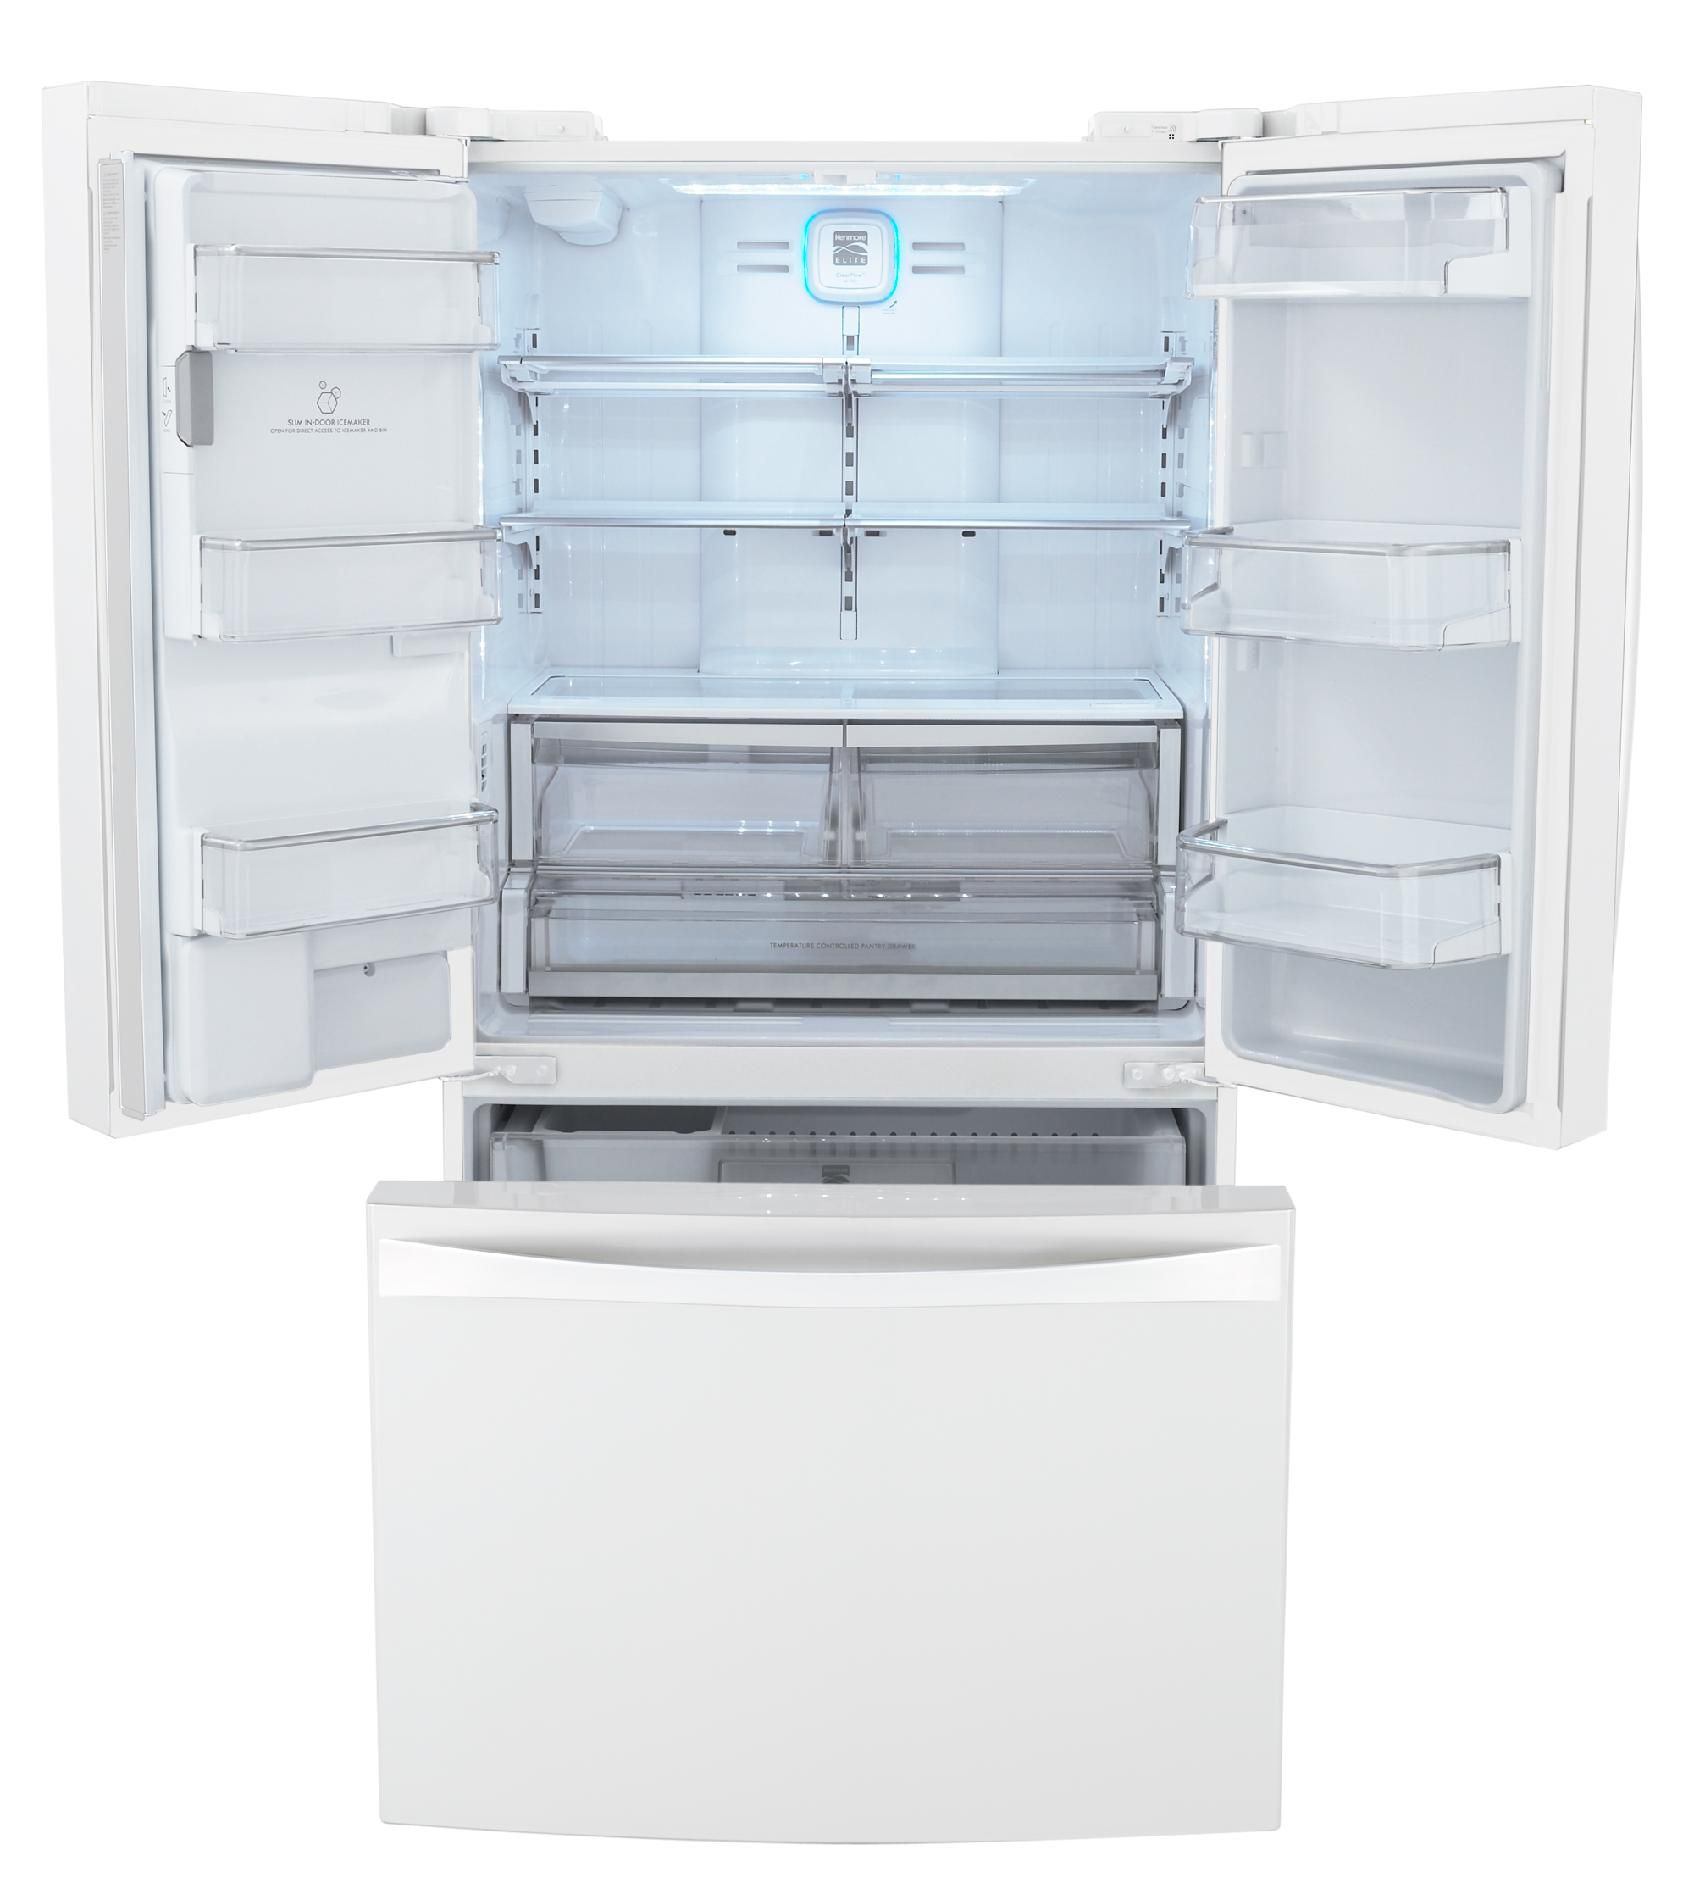 Kenmore Elite 25 cu. ft. French-Door Counter-Depth Bottom-Freezer Refrigerator -  White